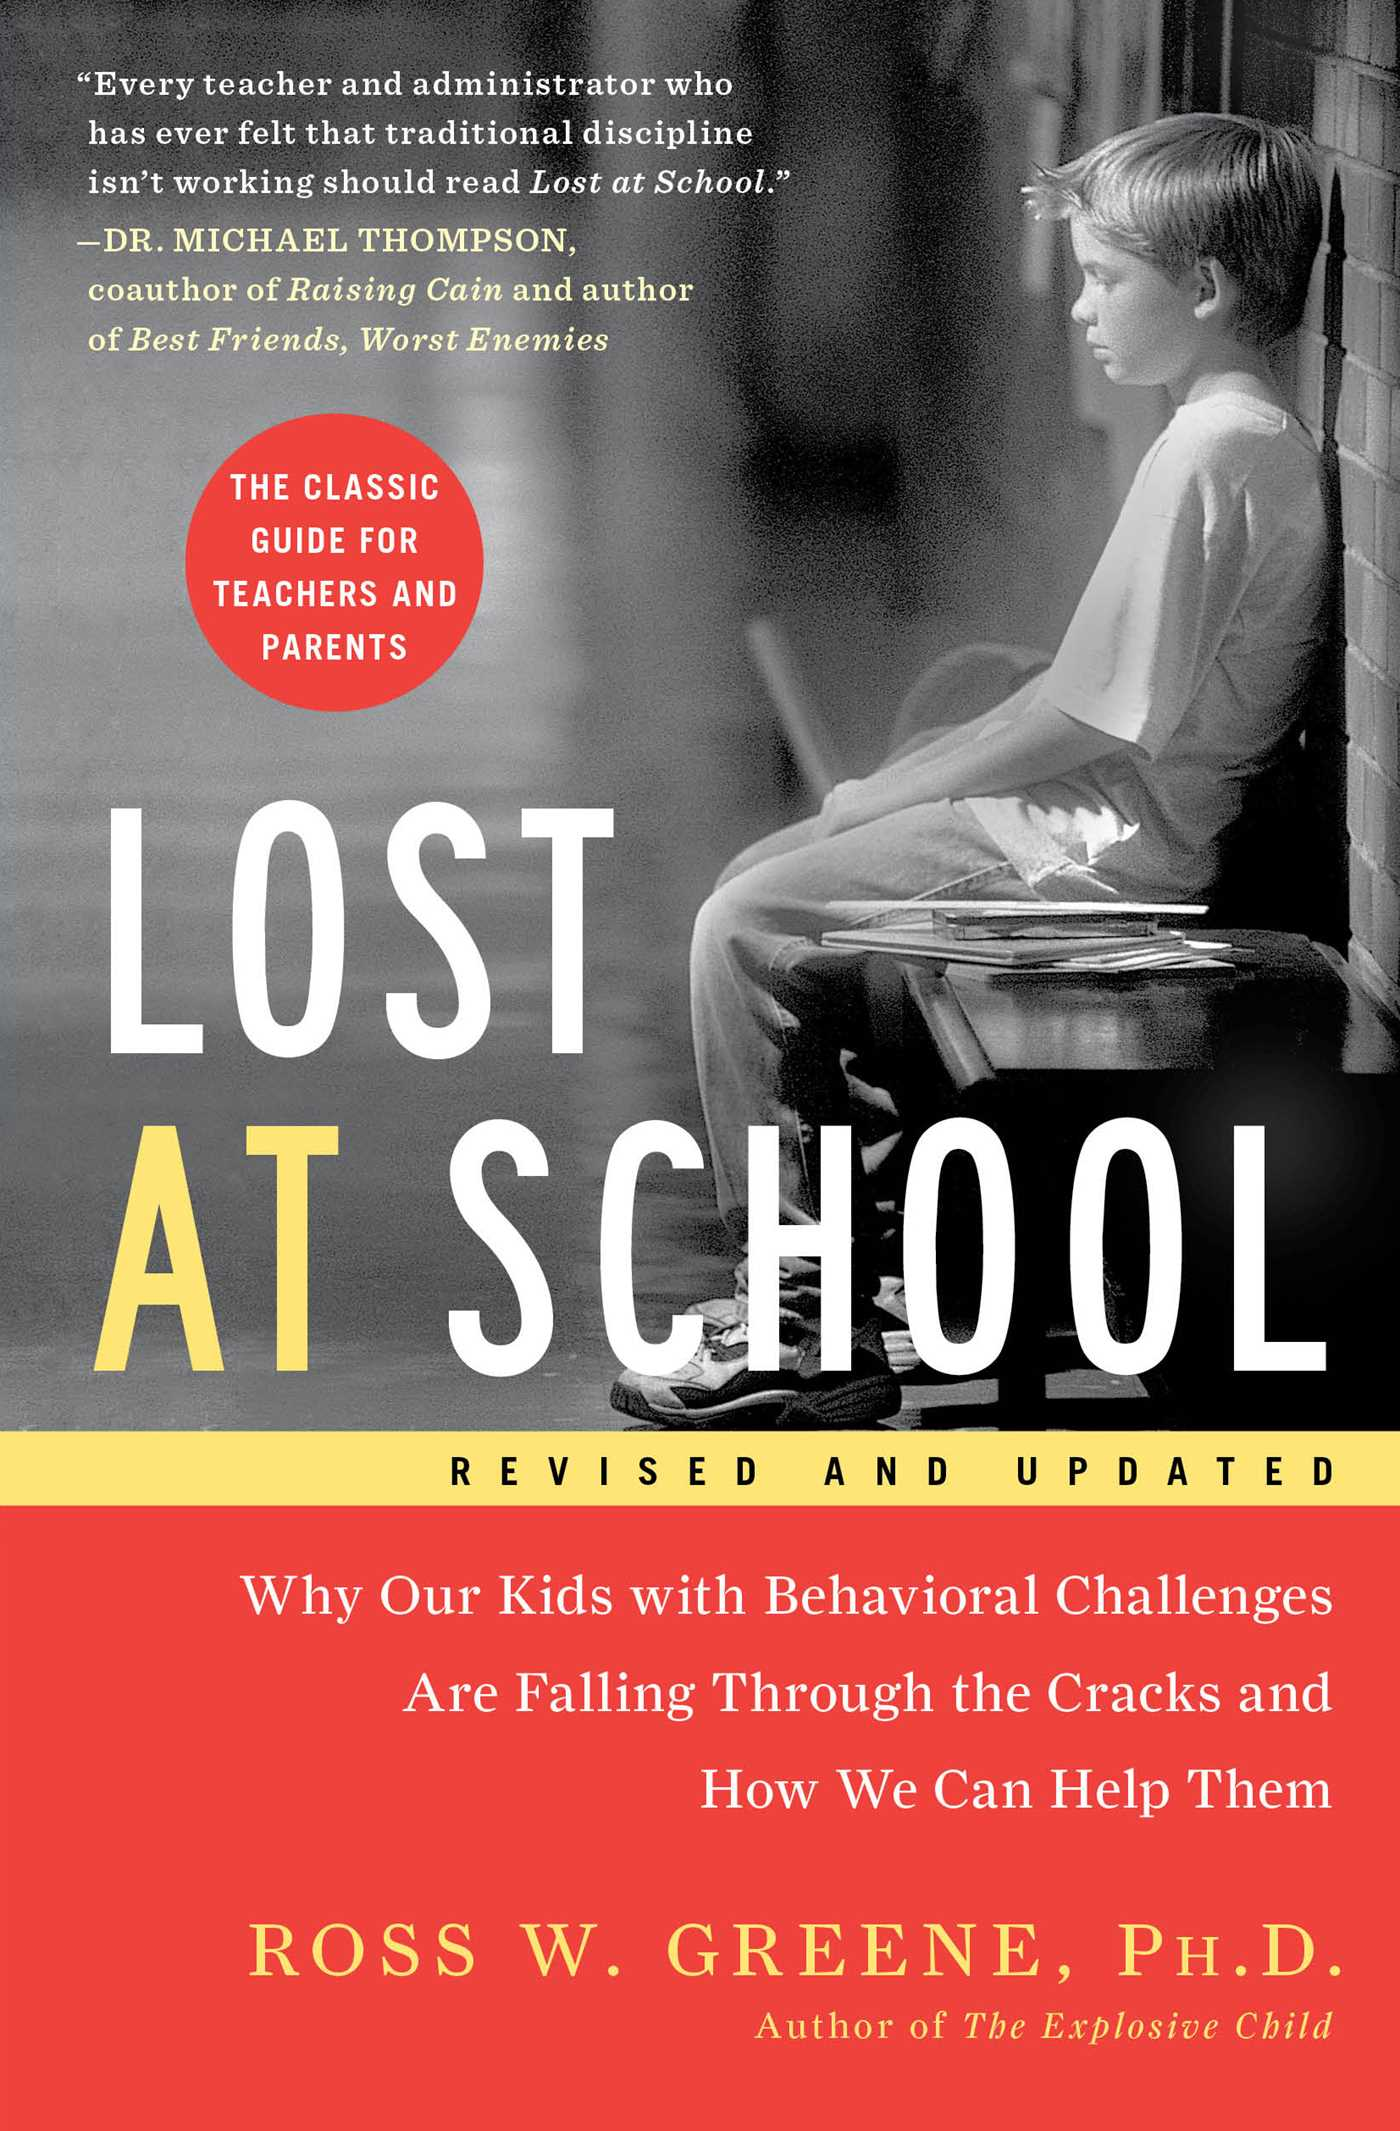 Lost At School - Ross Greene - This book supports working with people, especially children, in a proactive and collaborative way that results in learning and growing from mistakes.